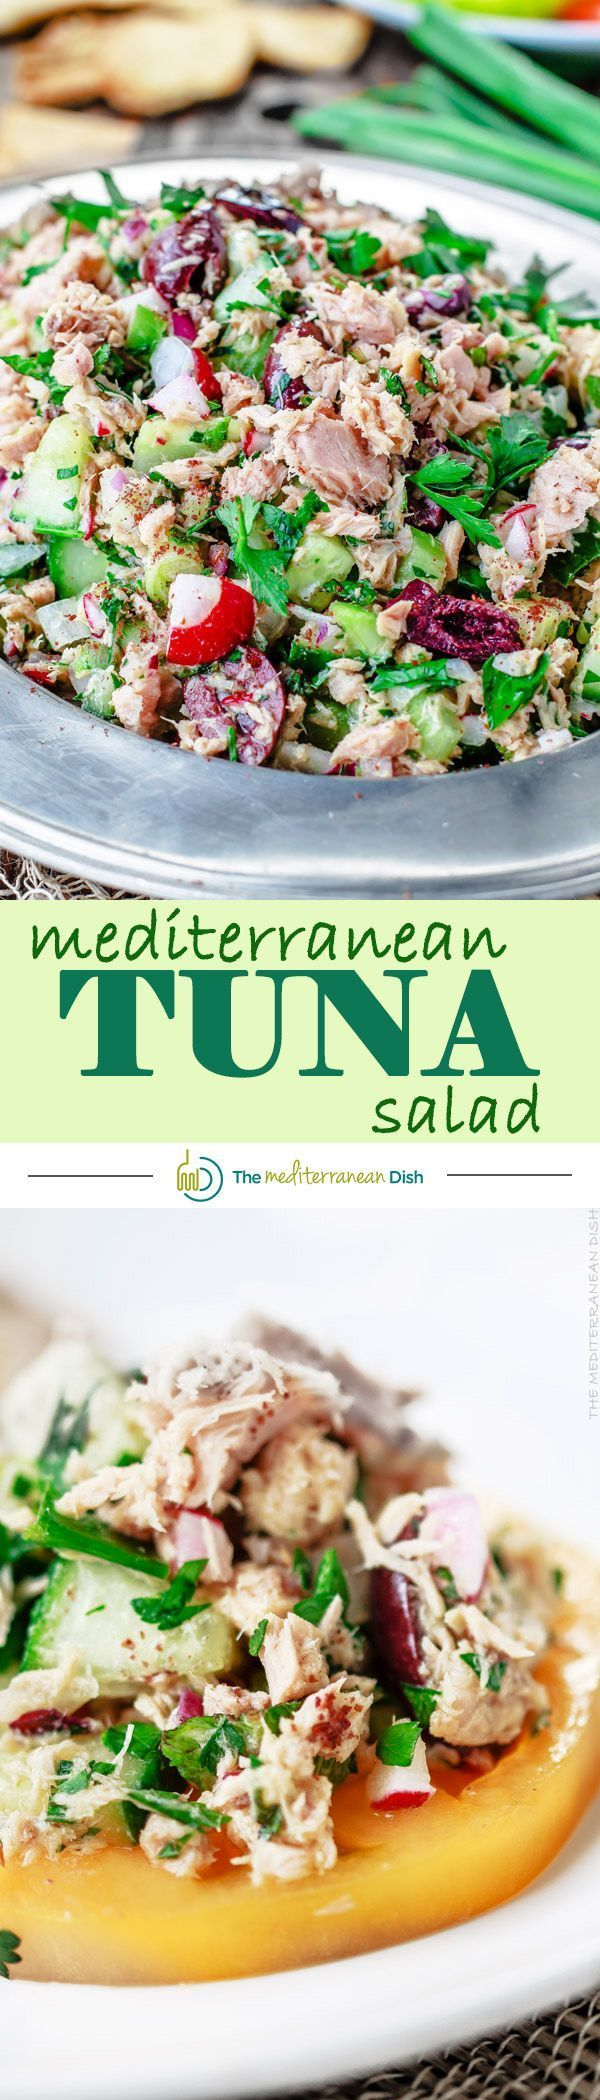 The BEST Mediterranean Tuna Salad with fresh herbs, chopped vegetables and a zesty Dijon vinaigrette! DELICIOUS! Perfect for potlucks, appetizer or even dinner! Just add pita pockets or pita chips and you're good to go!